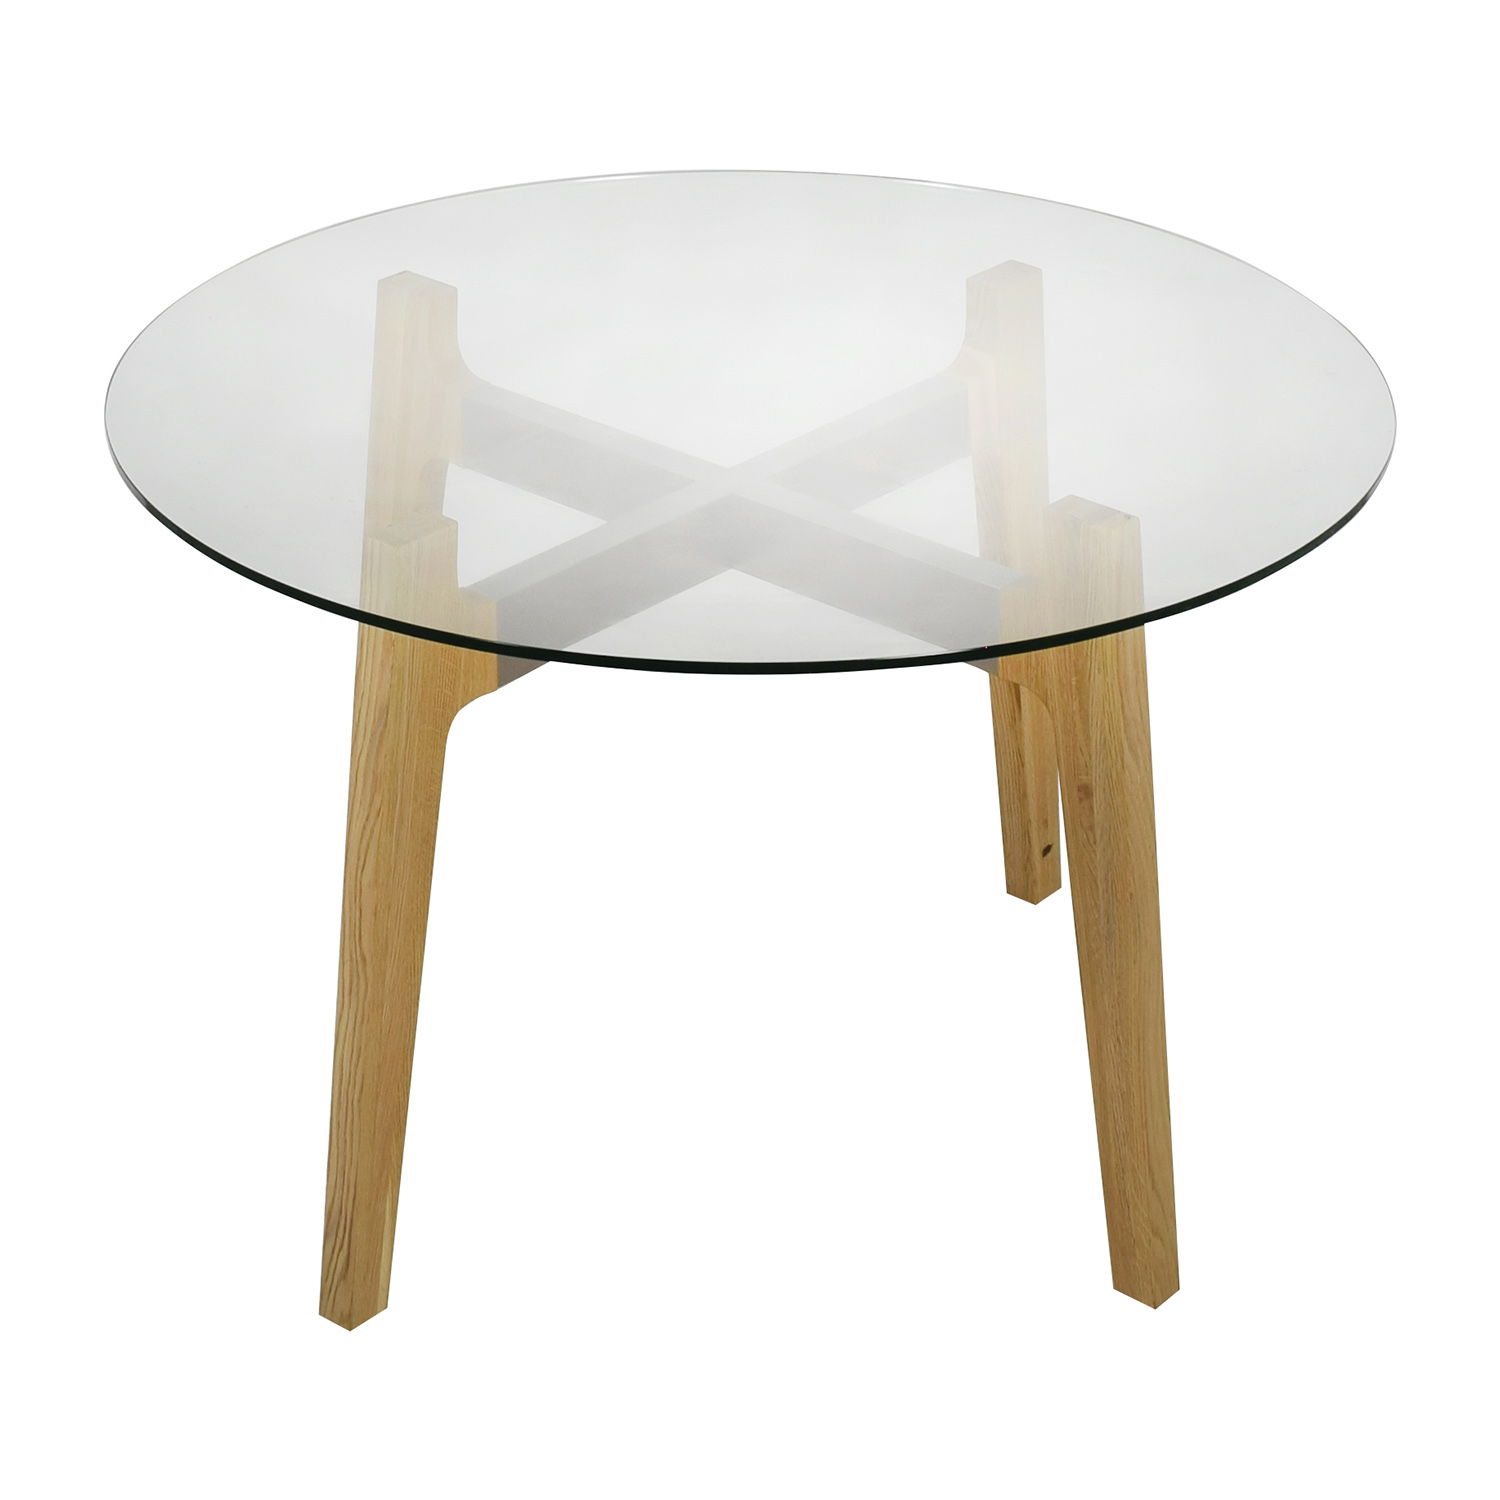 50 Off Cb2 Cb2 Round Brace Dining Table Tables